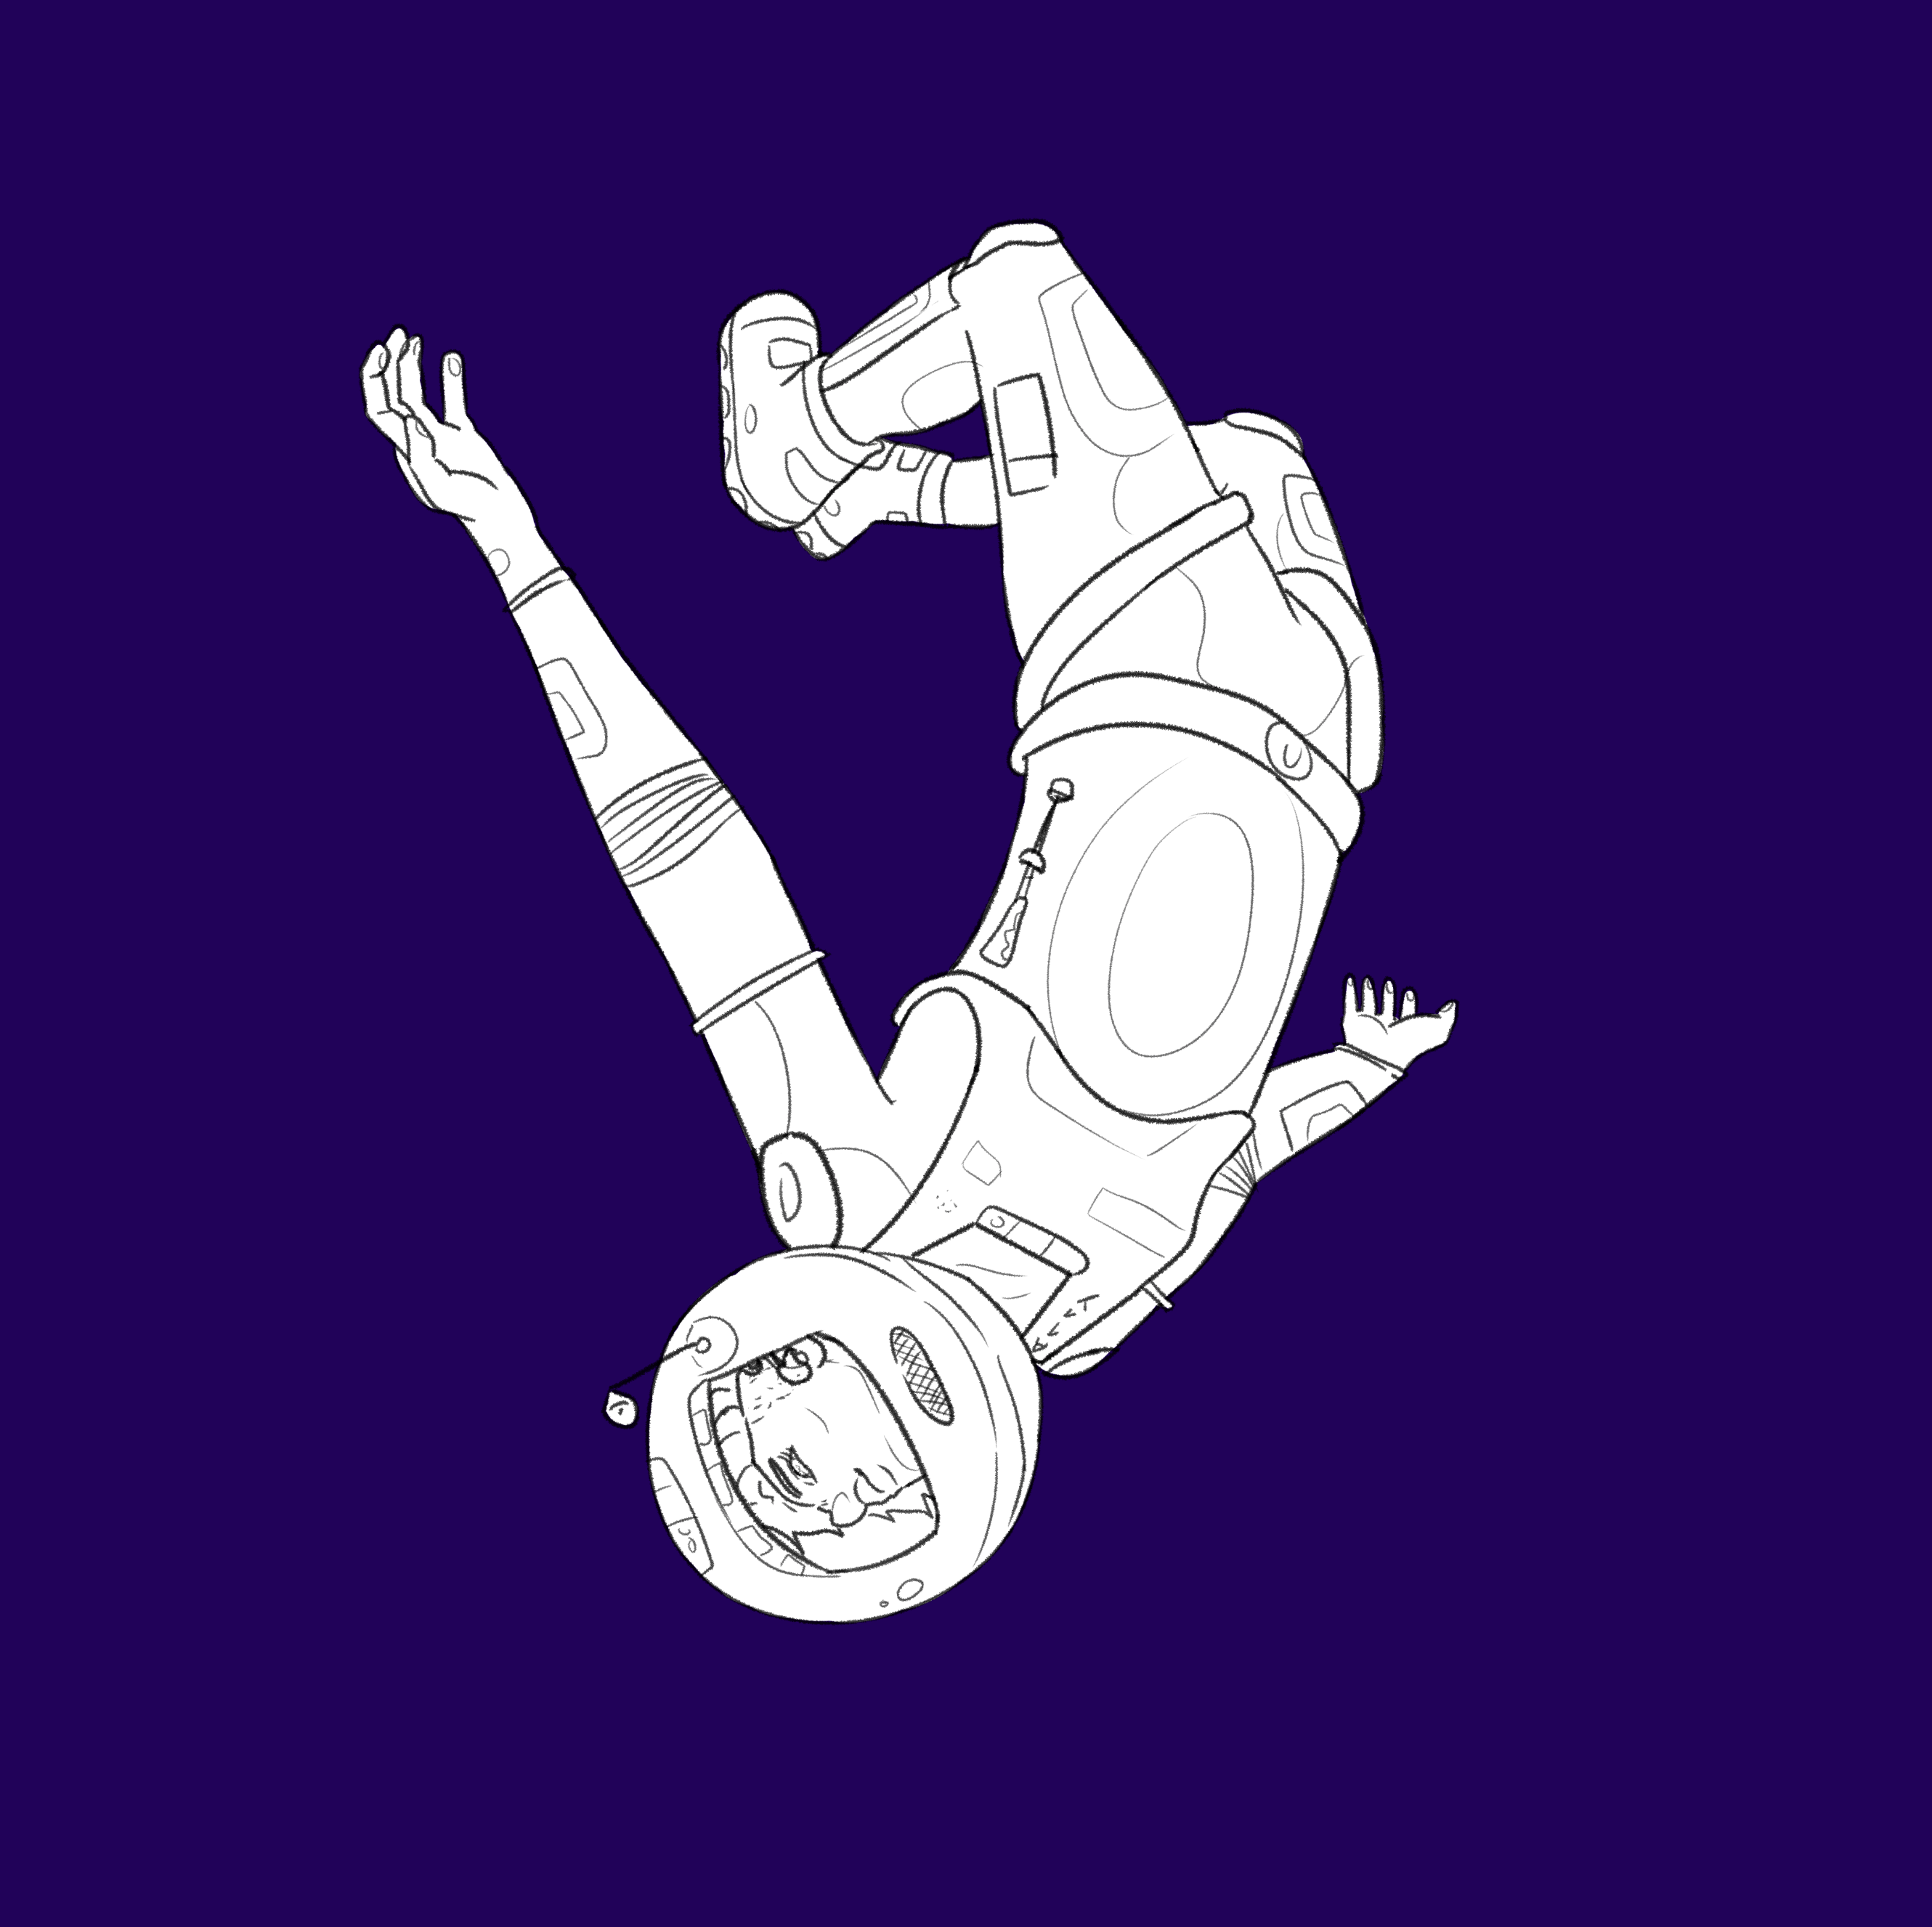 a deaf person floating in space.